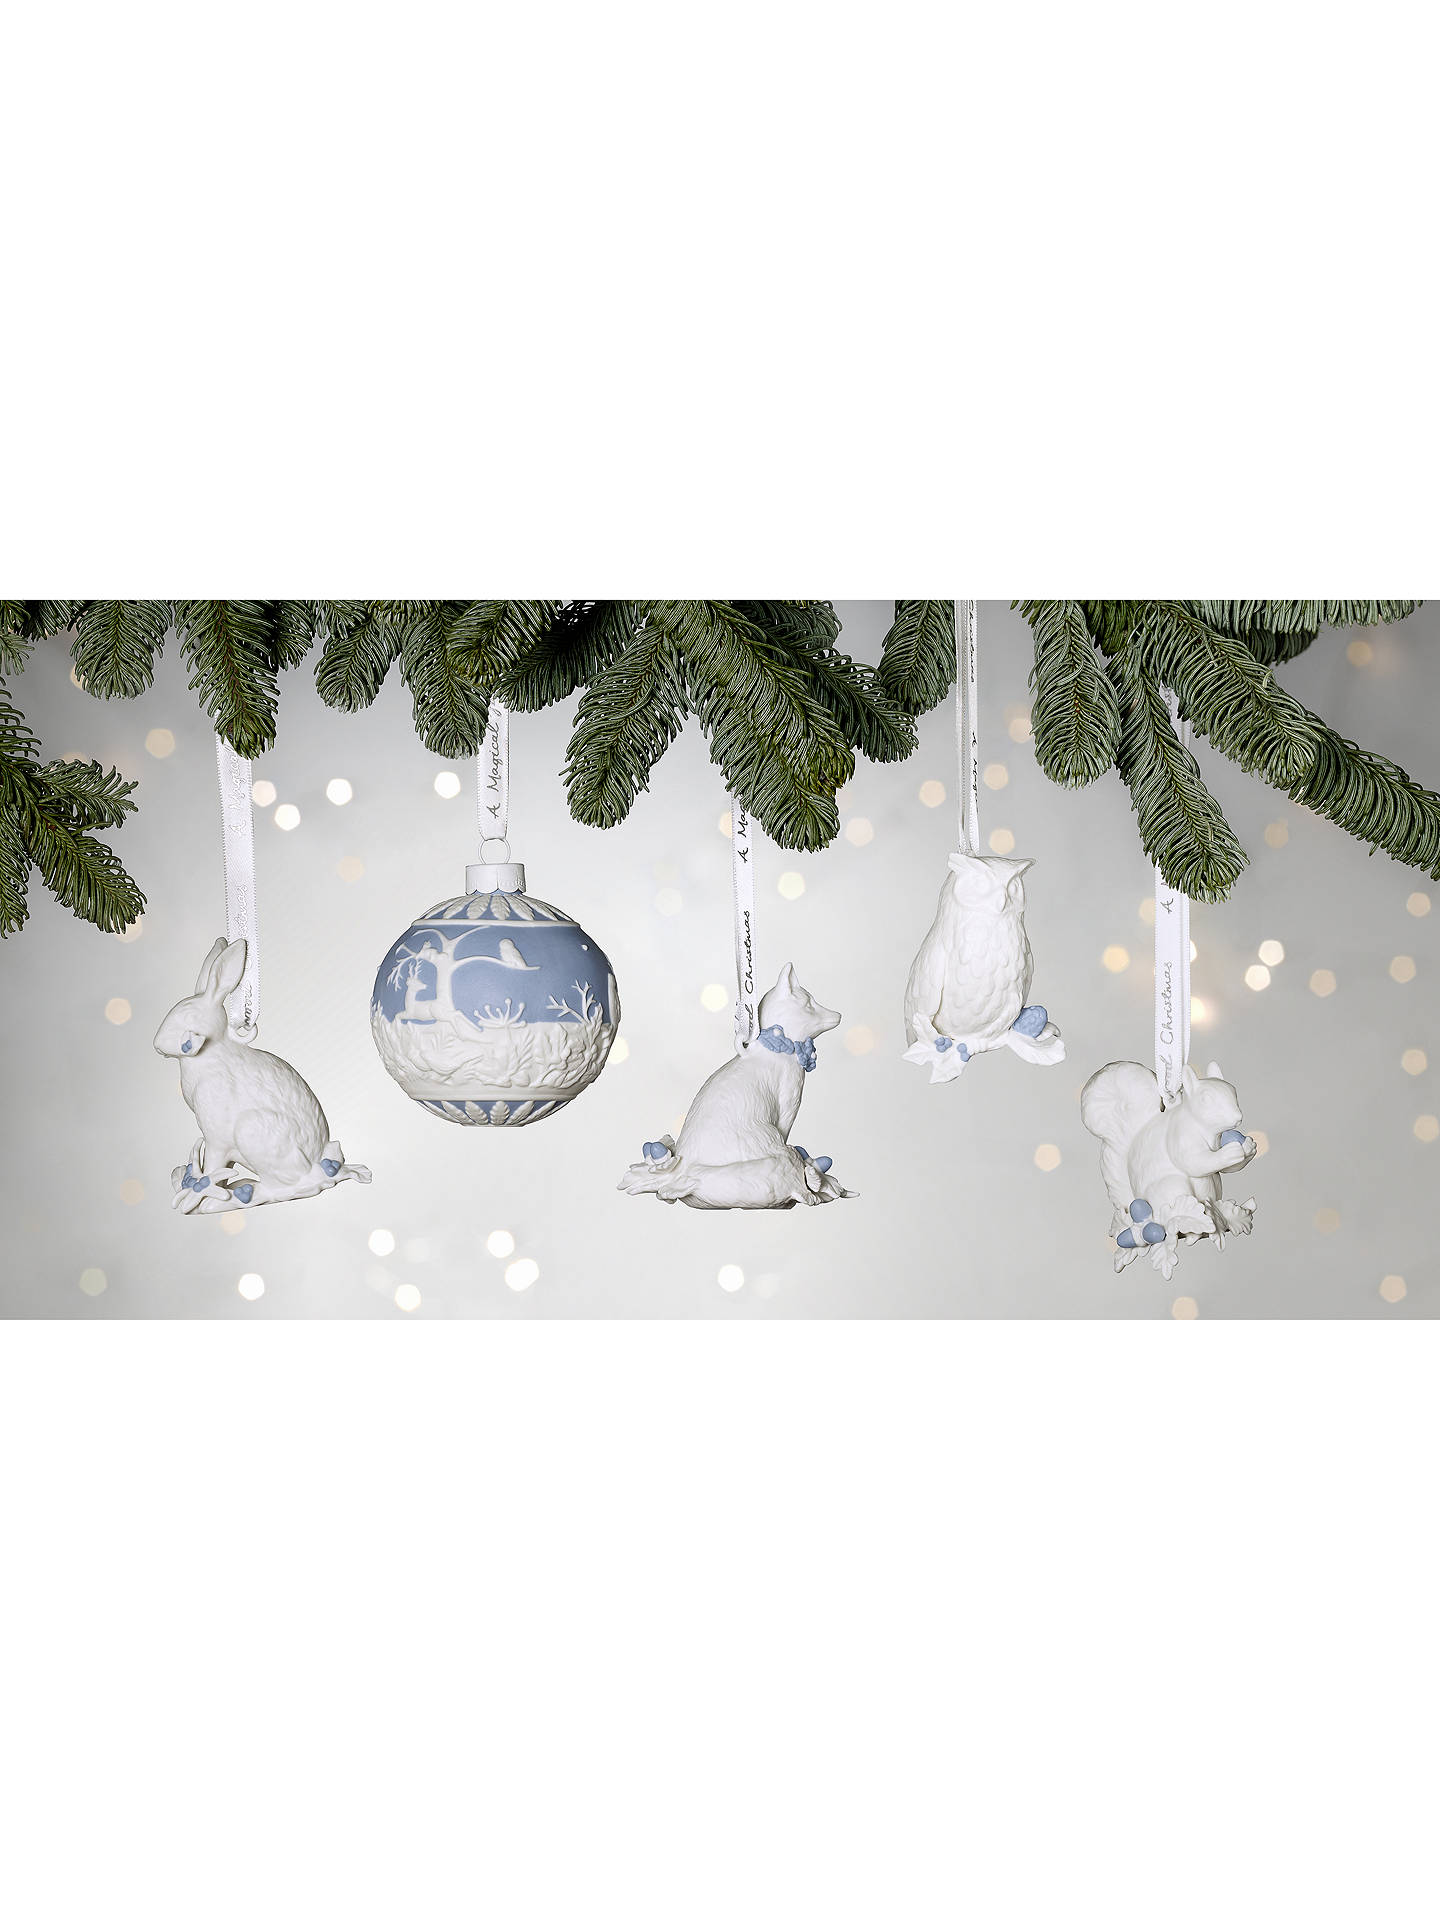 NEW WEDGWOOD 2019 CHRISTMAS WINTER WALK ORNAMENT